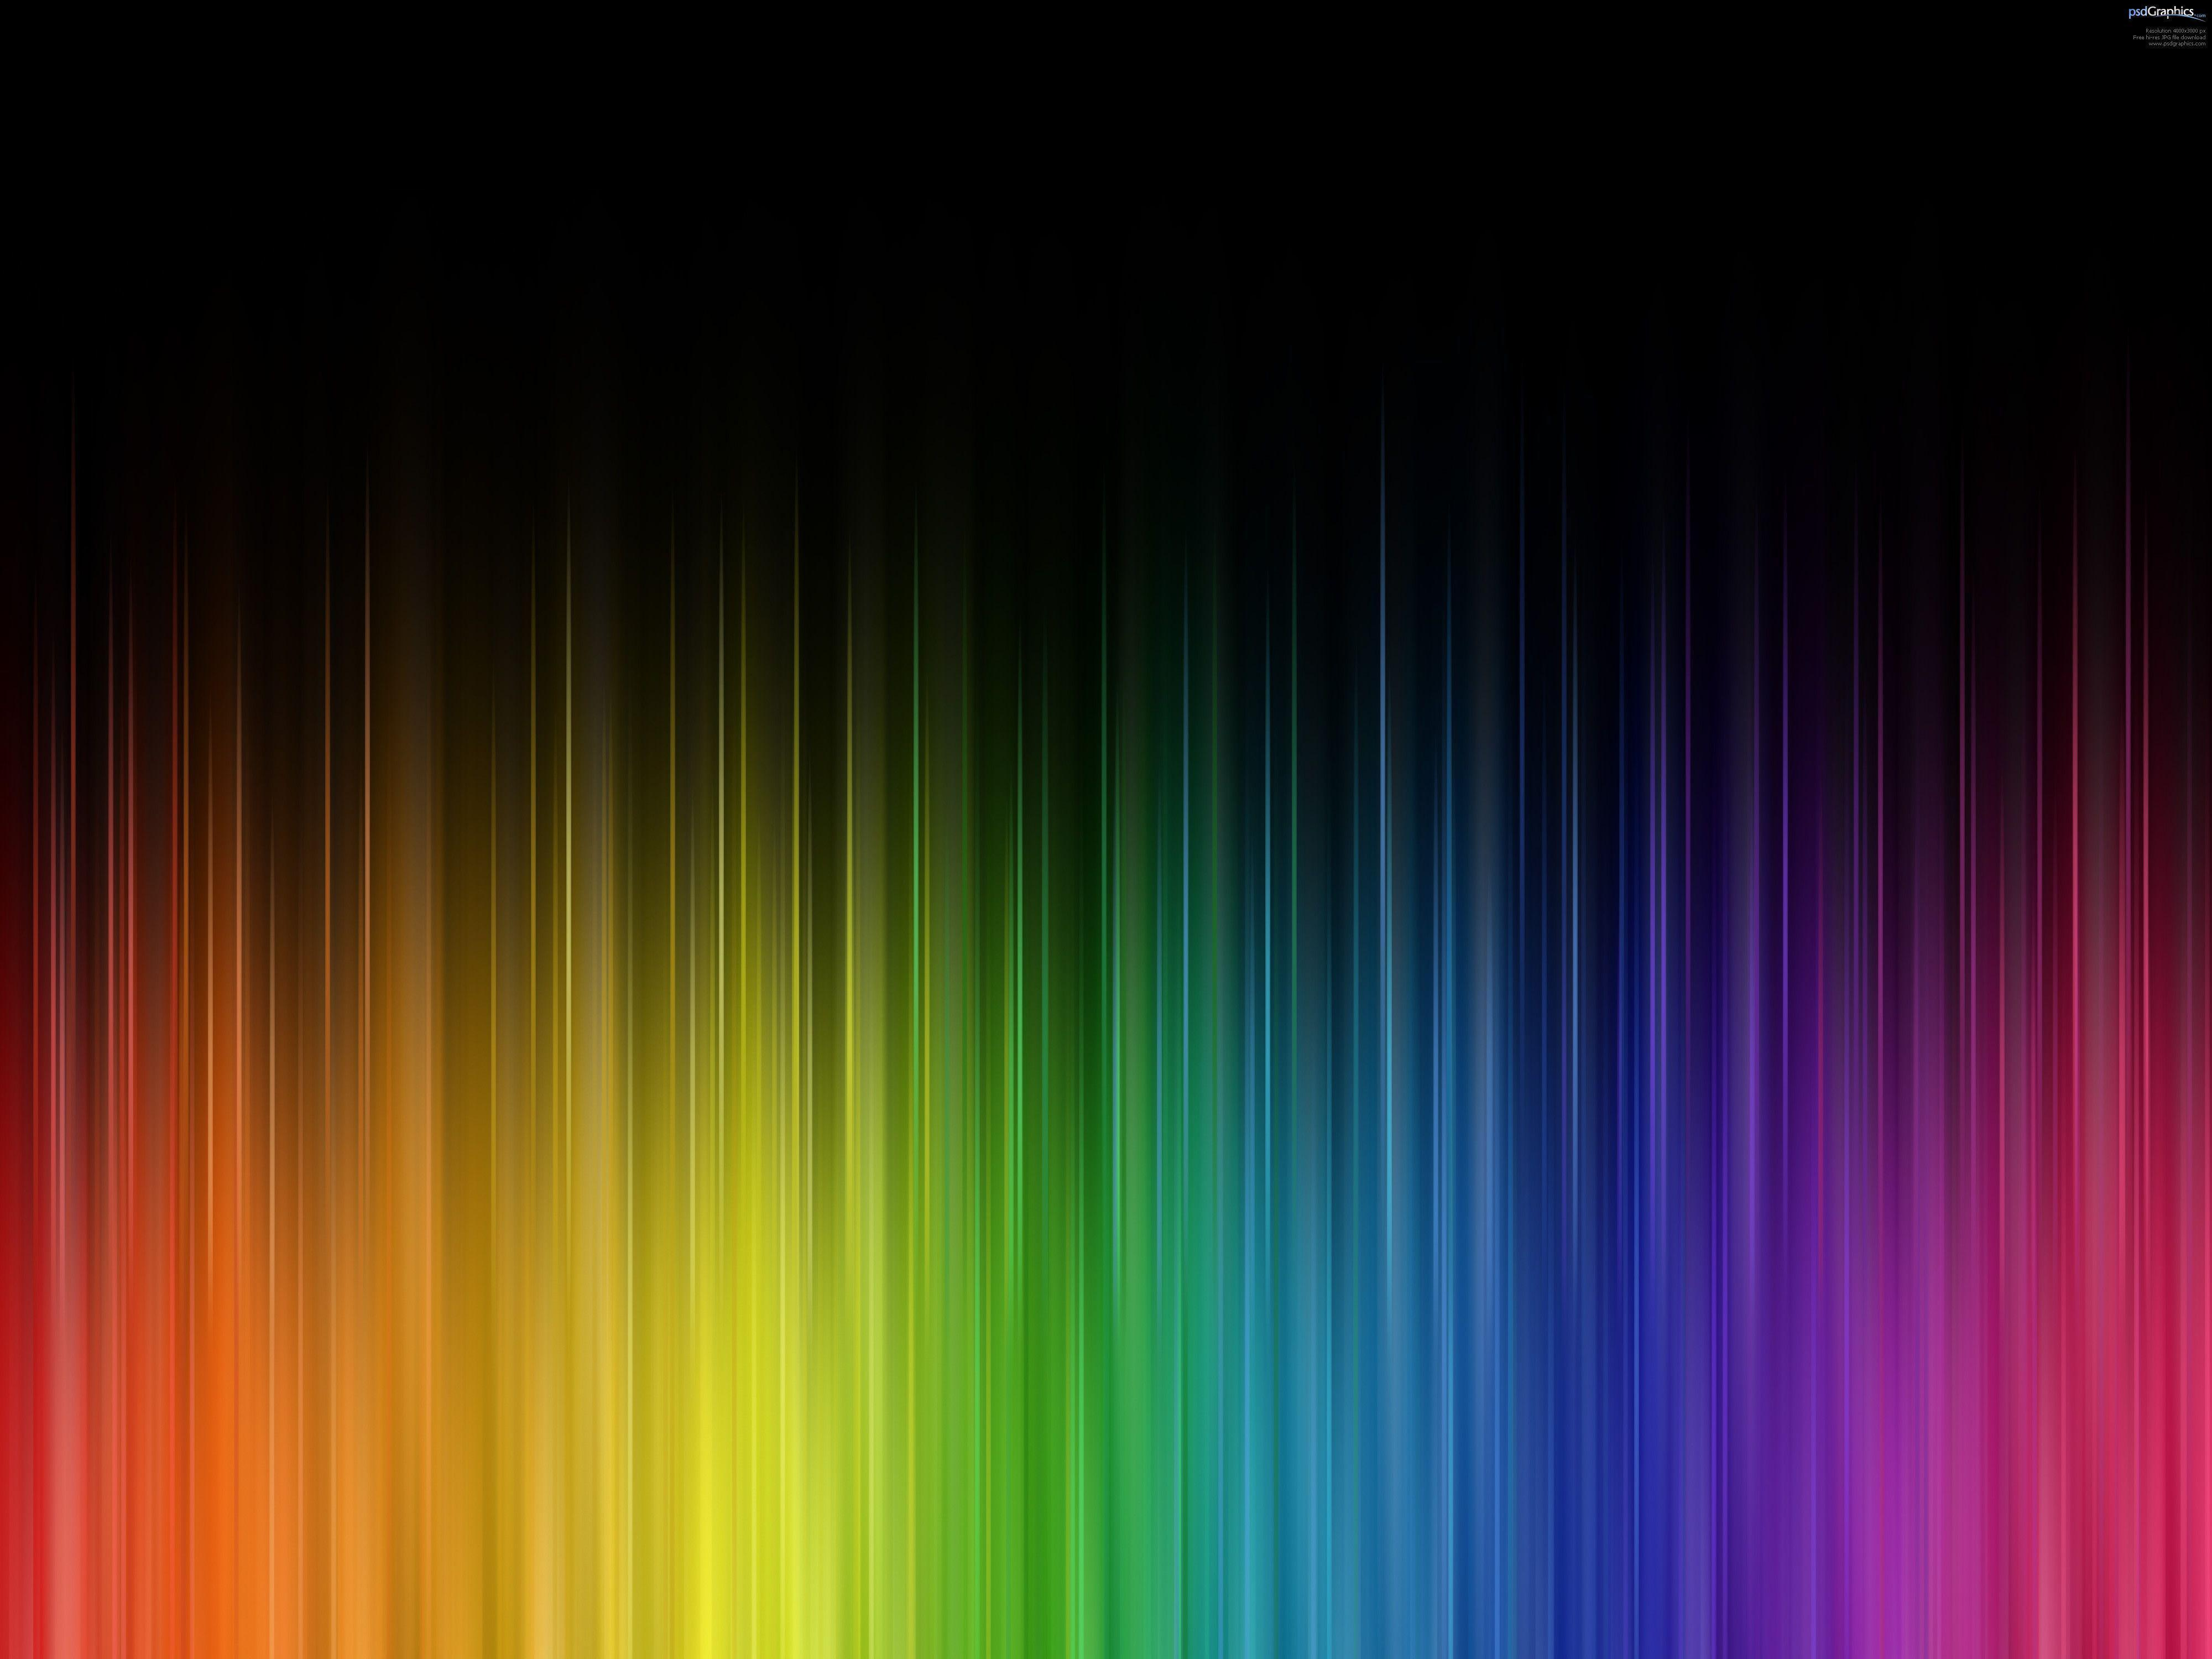 cool rainbow backgrounds wallpapers - photo #12